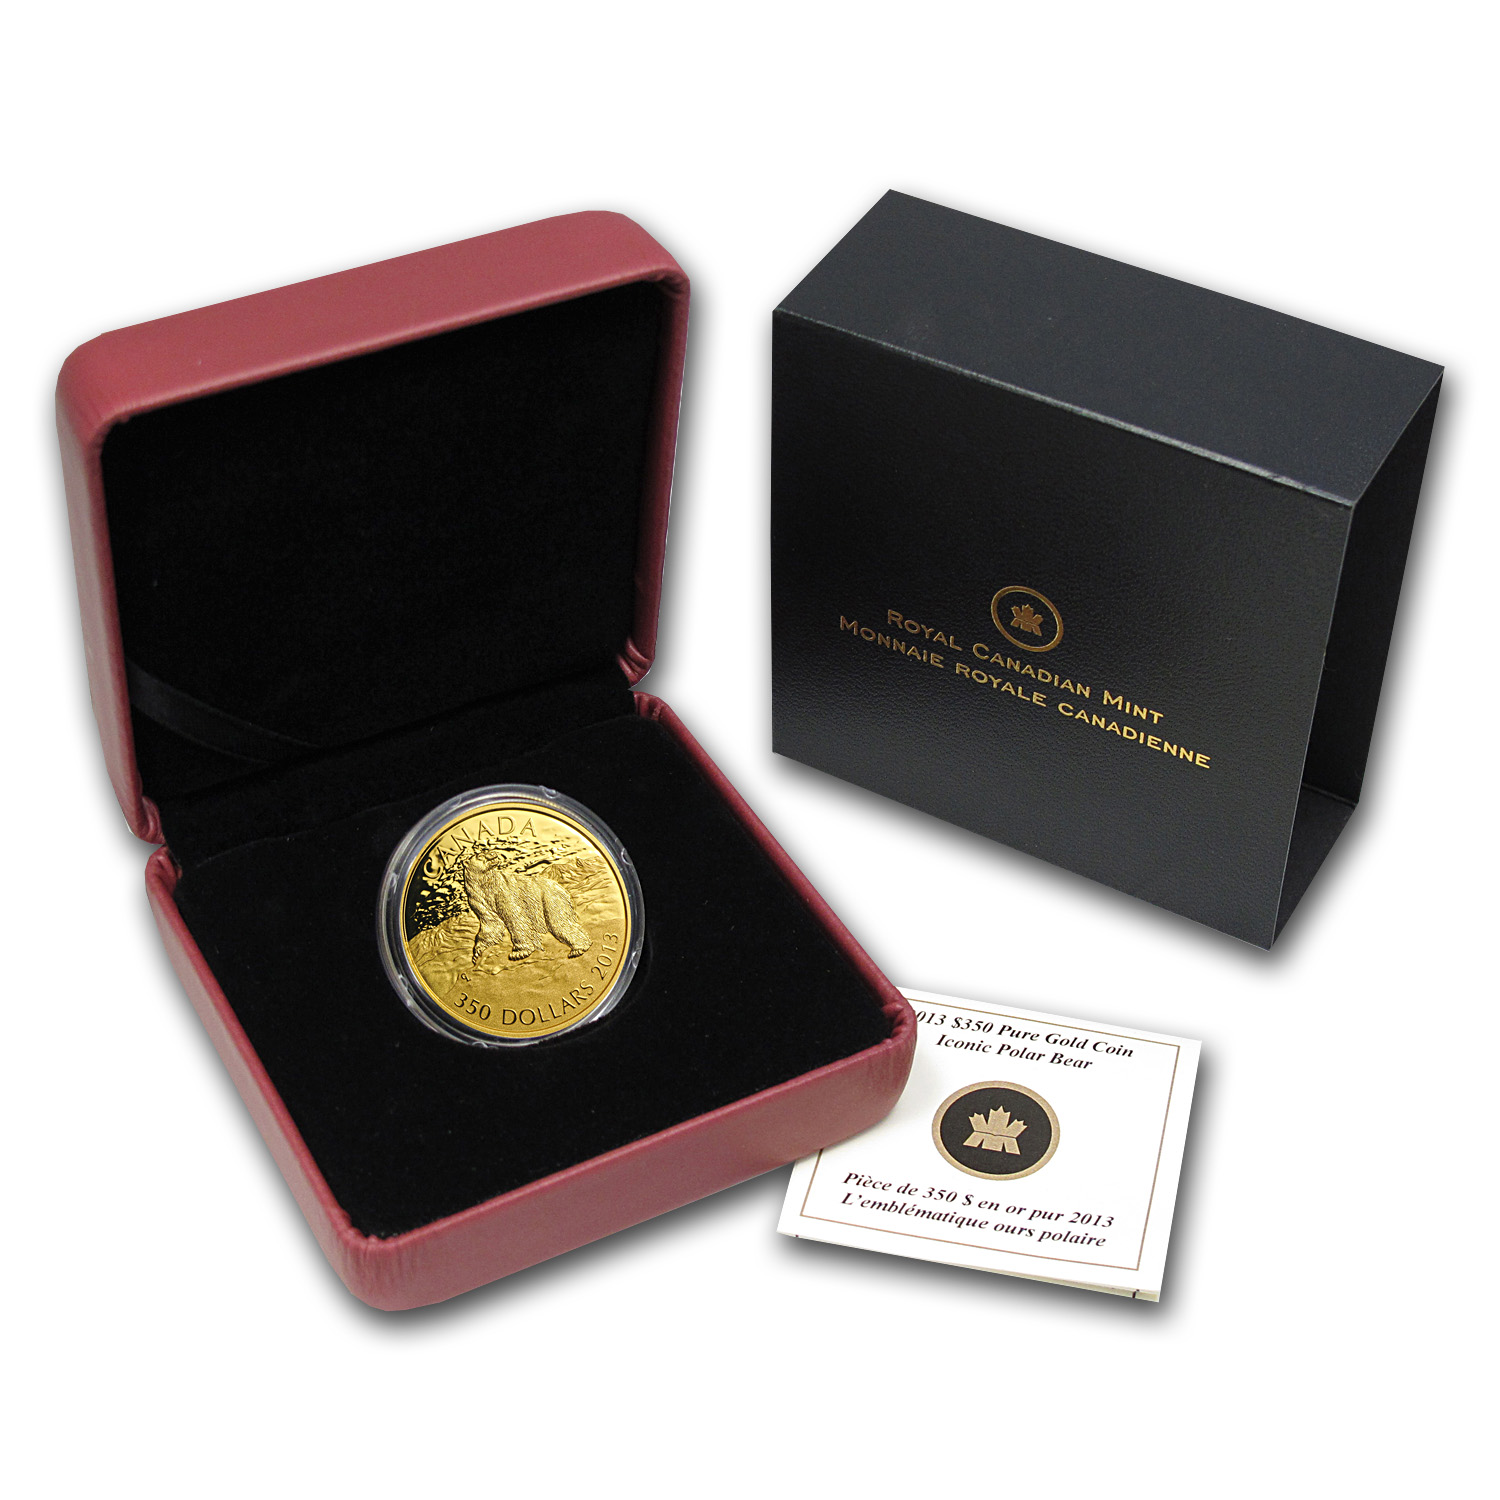 2013 1.125 oz Gold Canadian $350 Coin - Iconic Polar Bear